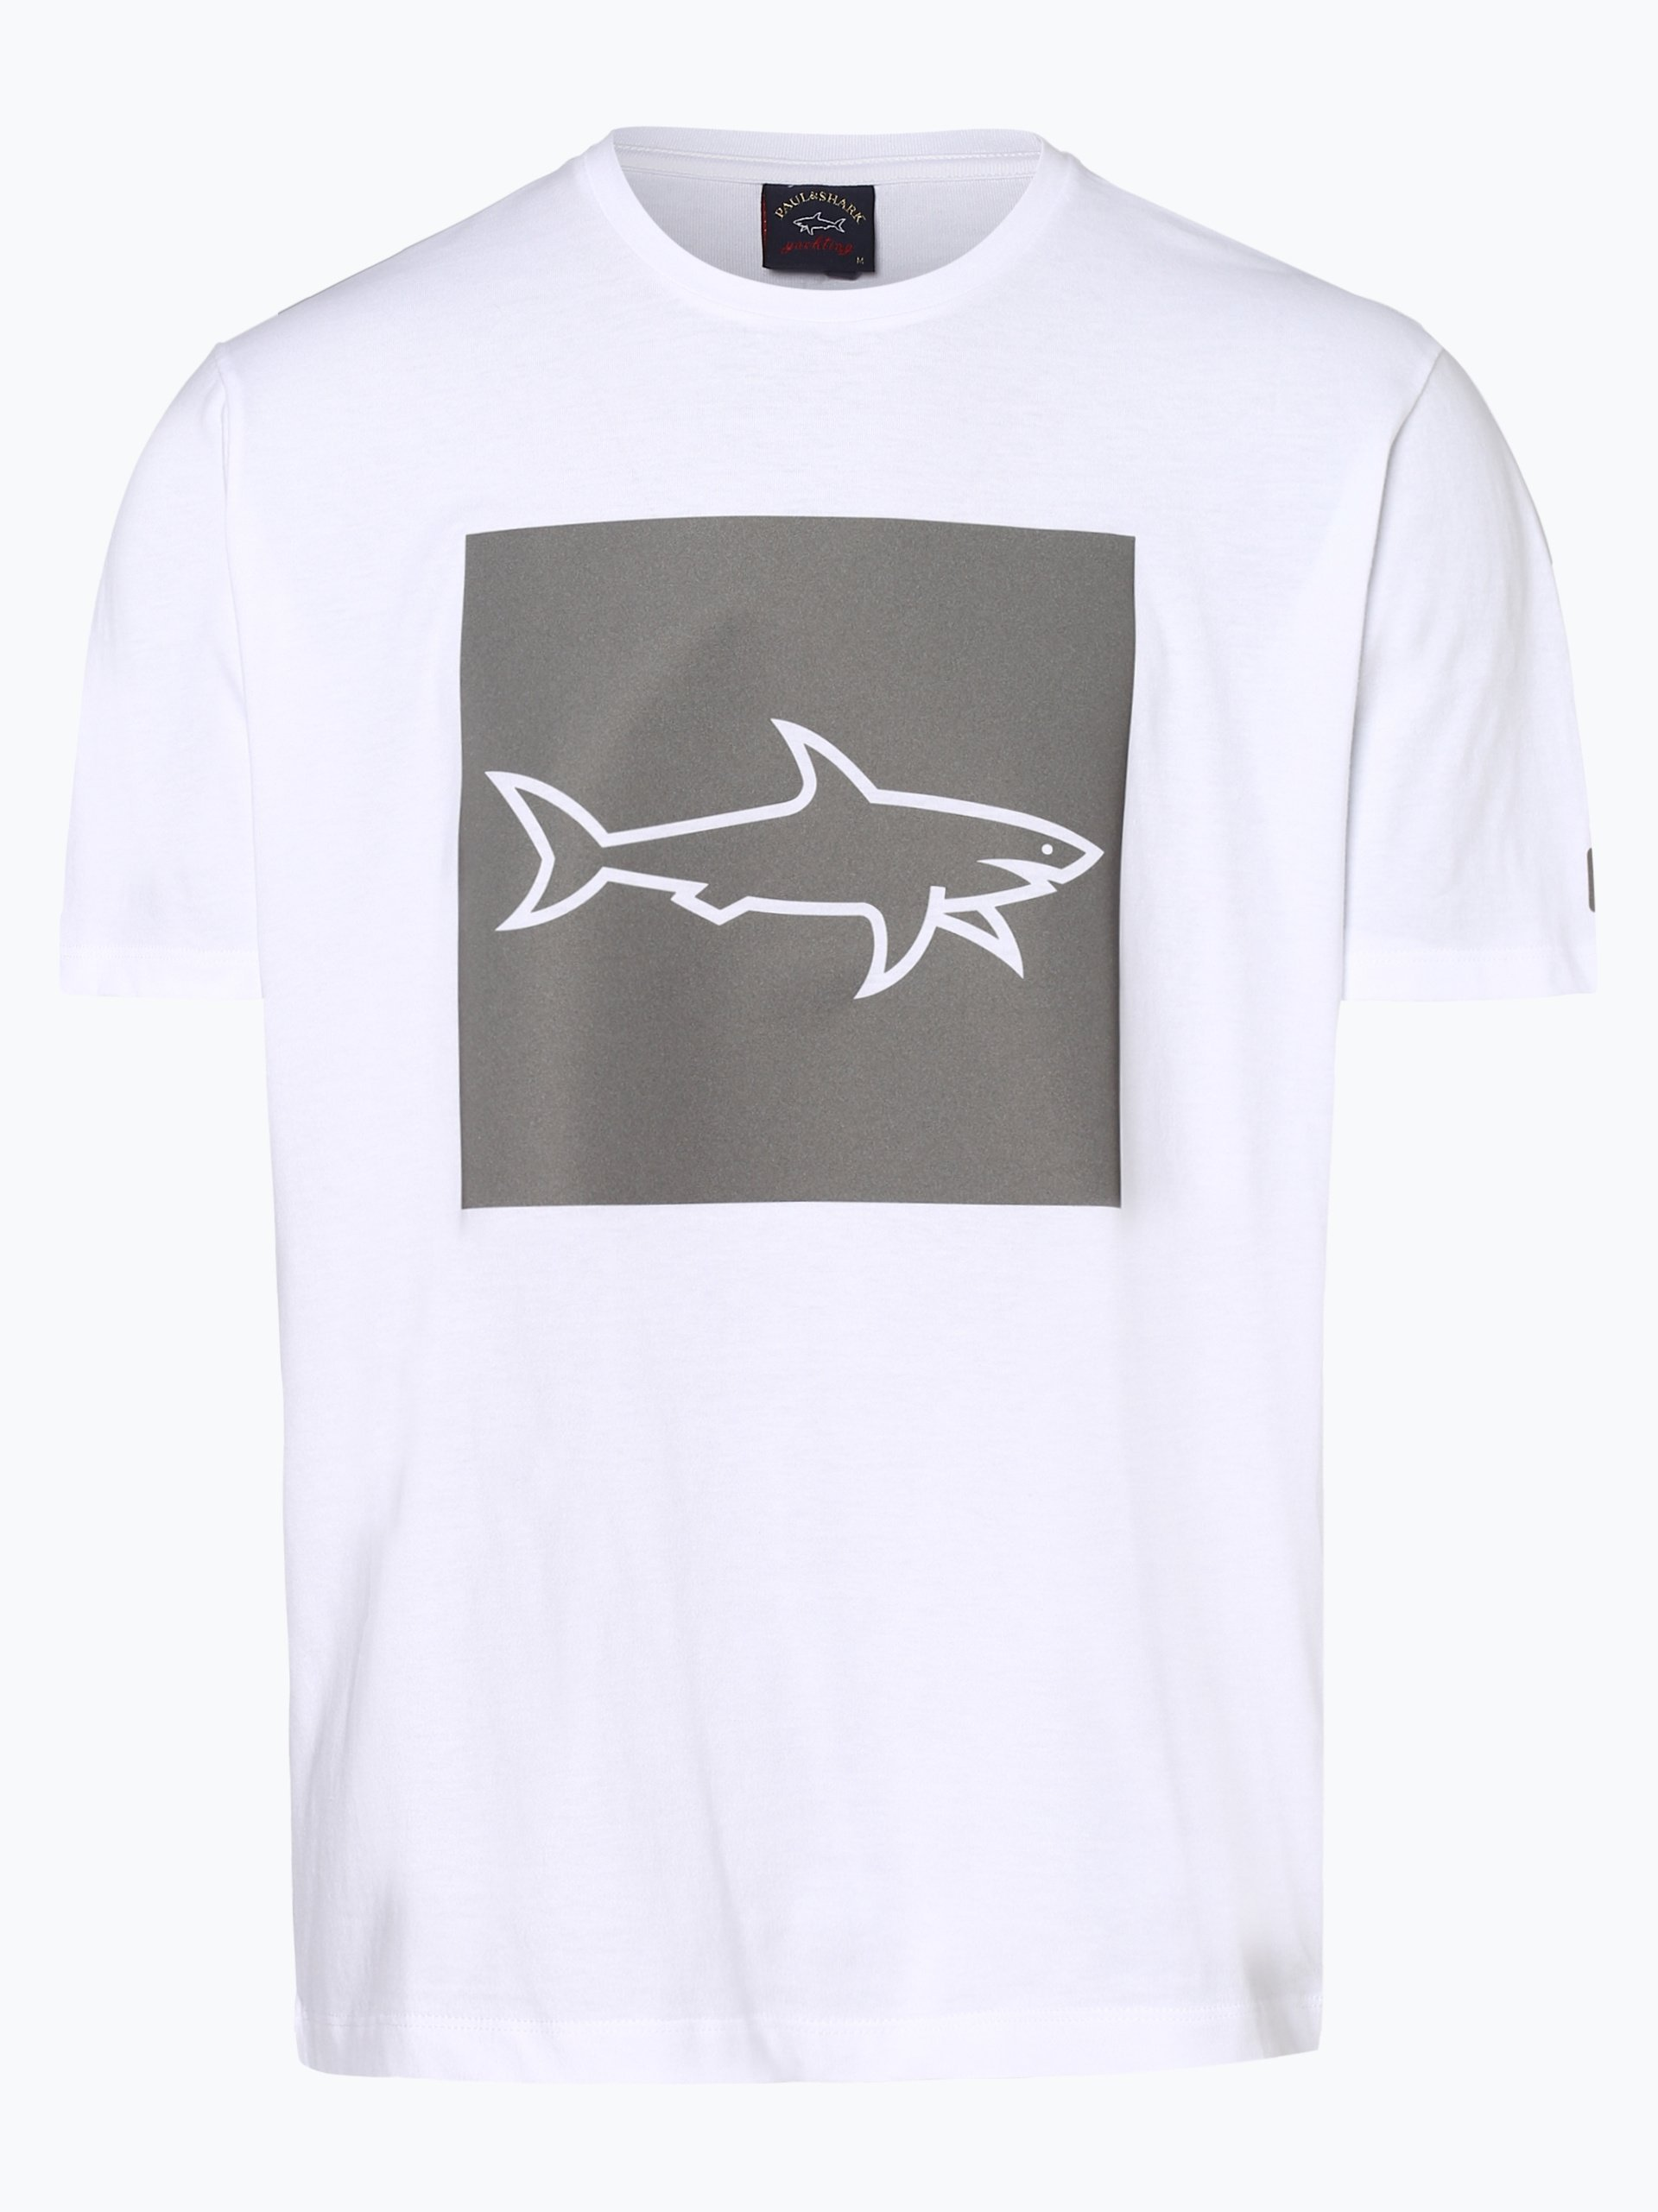 Paul & Shark Herren T-Shirt